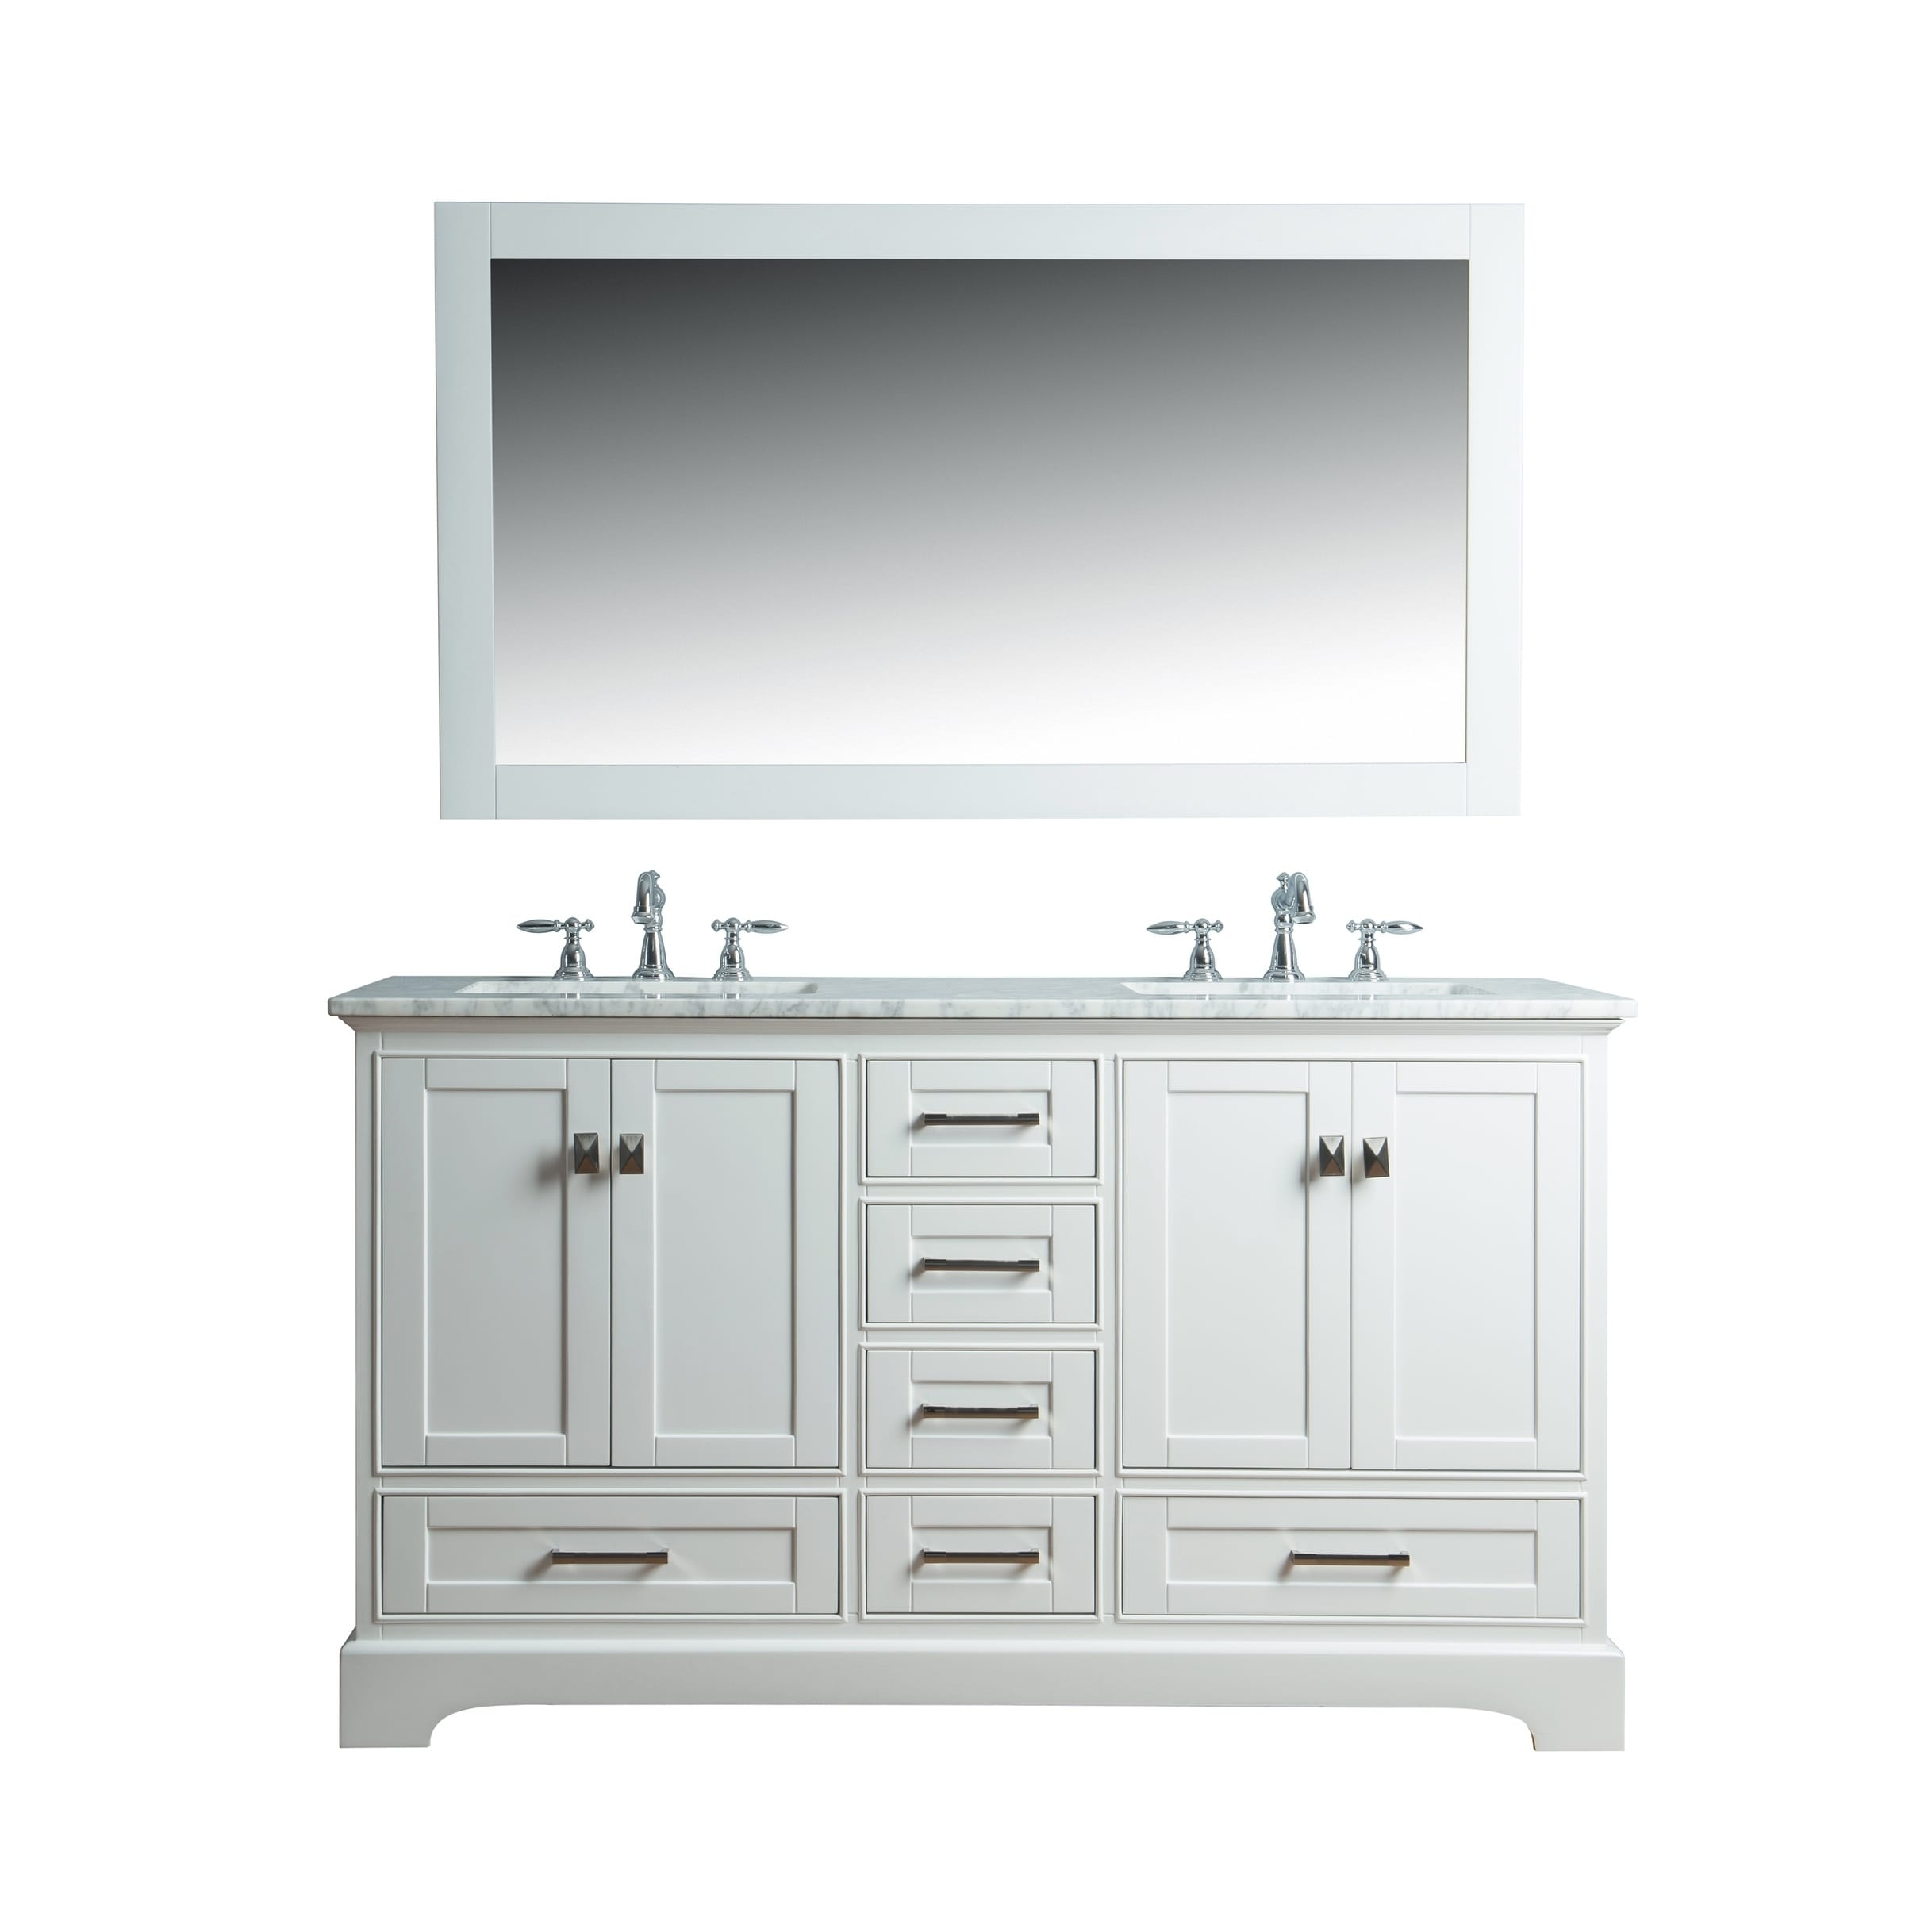 Stufurhome White 60 Inch Double Sink Bathroom Vanity Set With Mirror Overstock 10217328